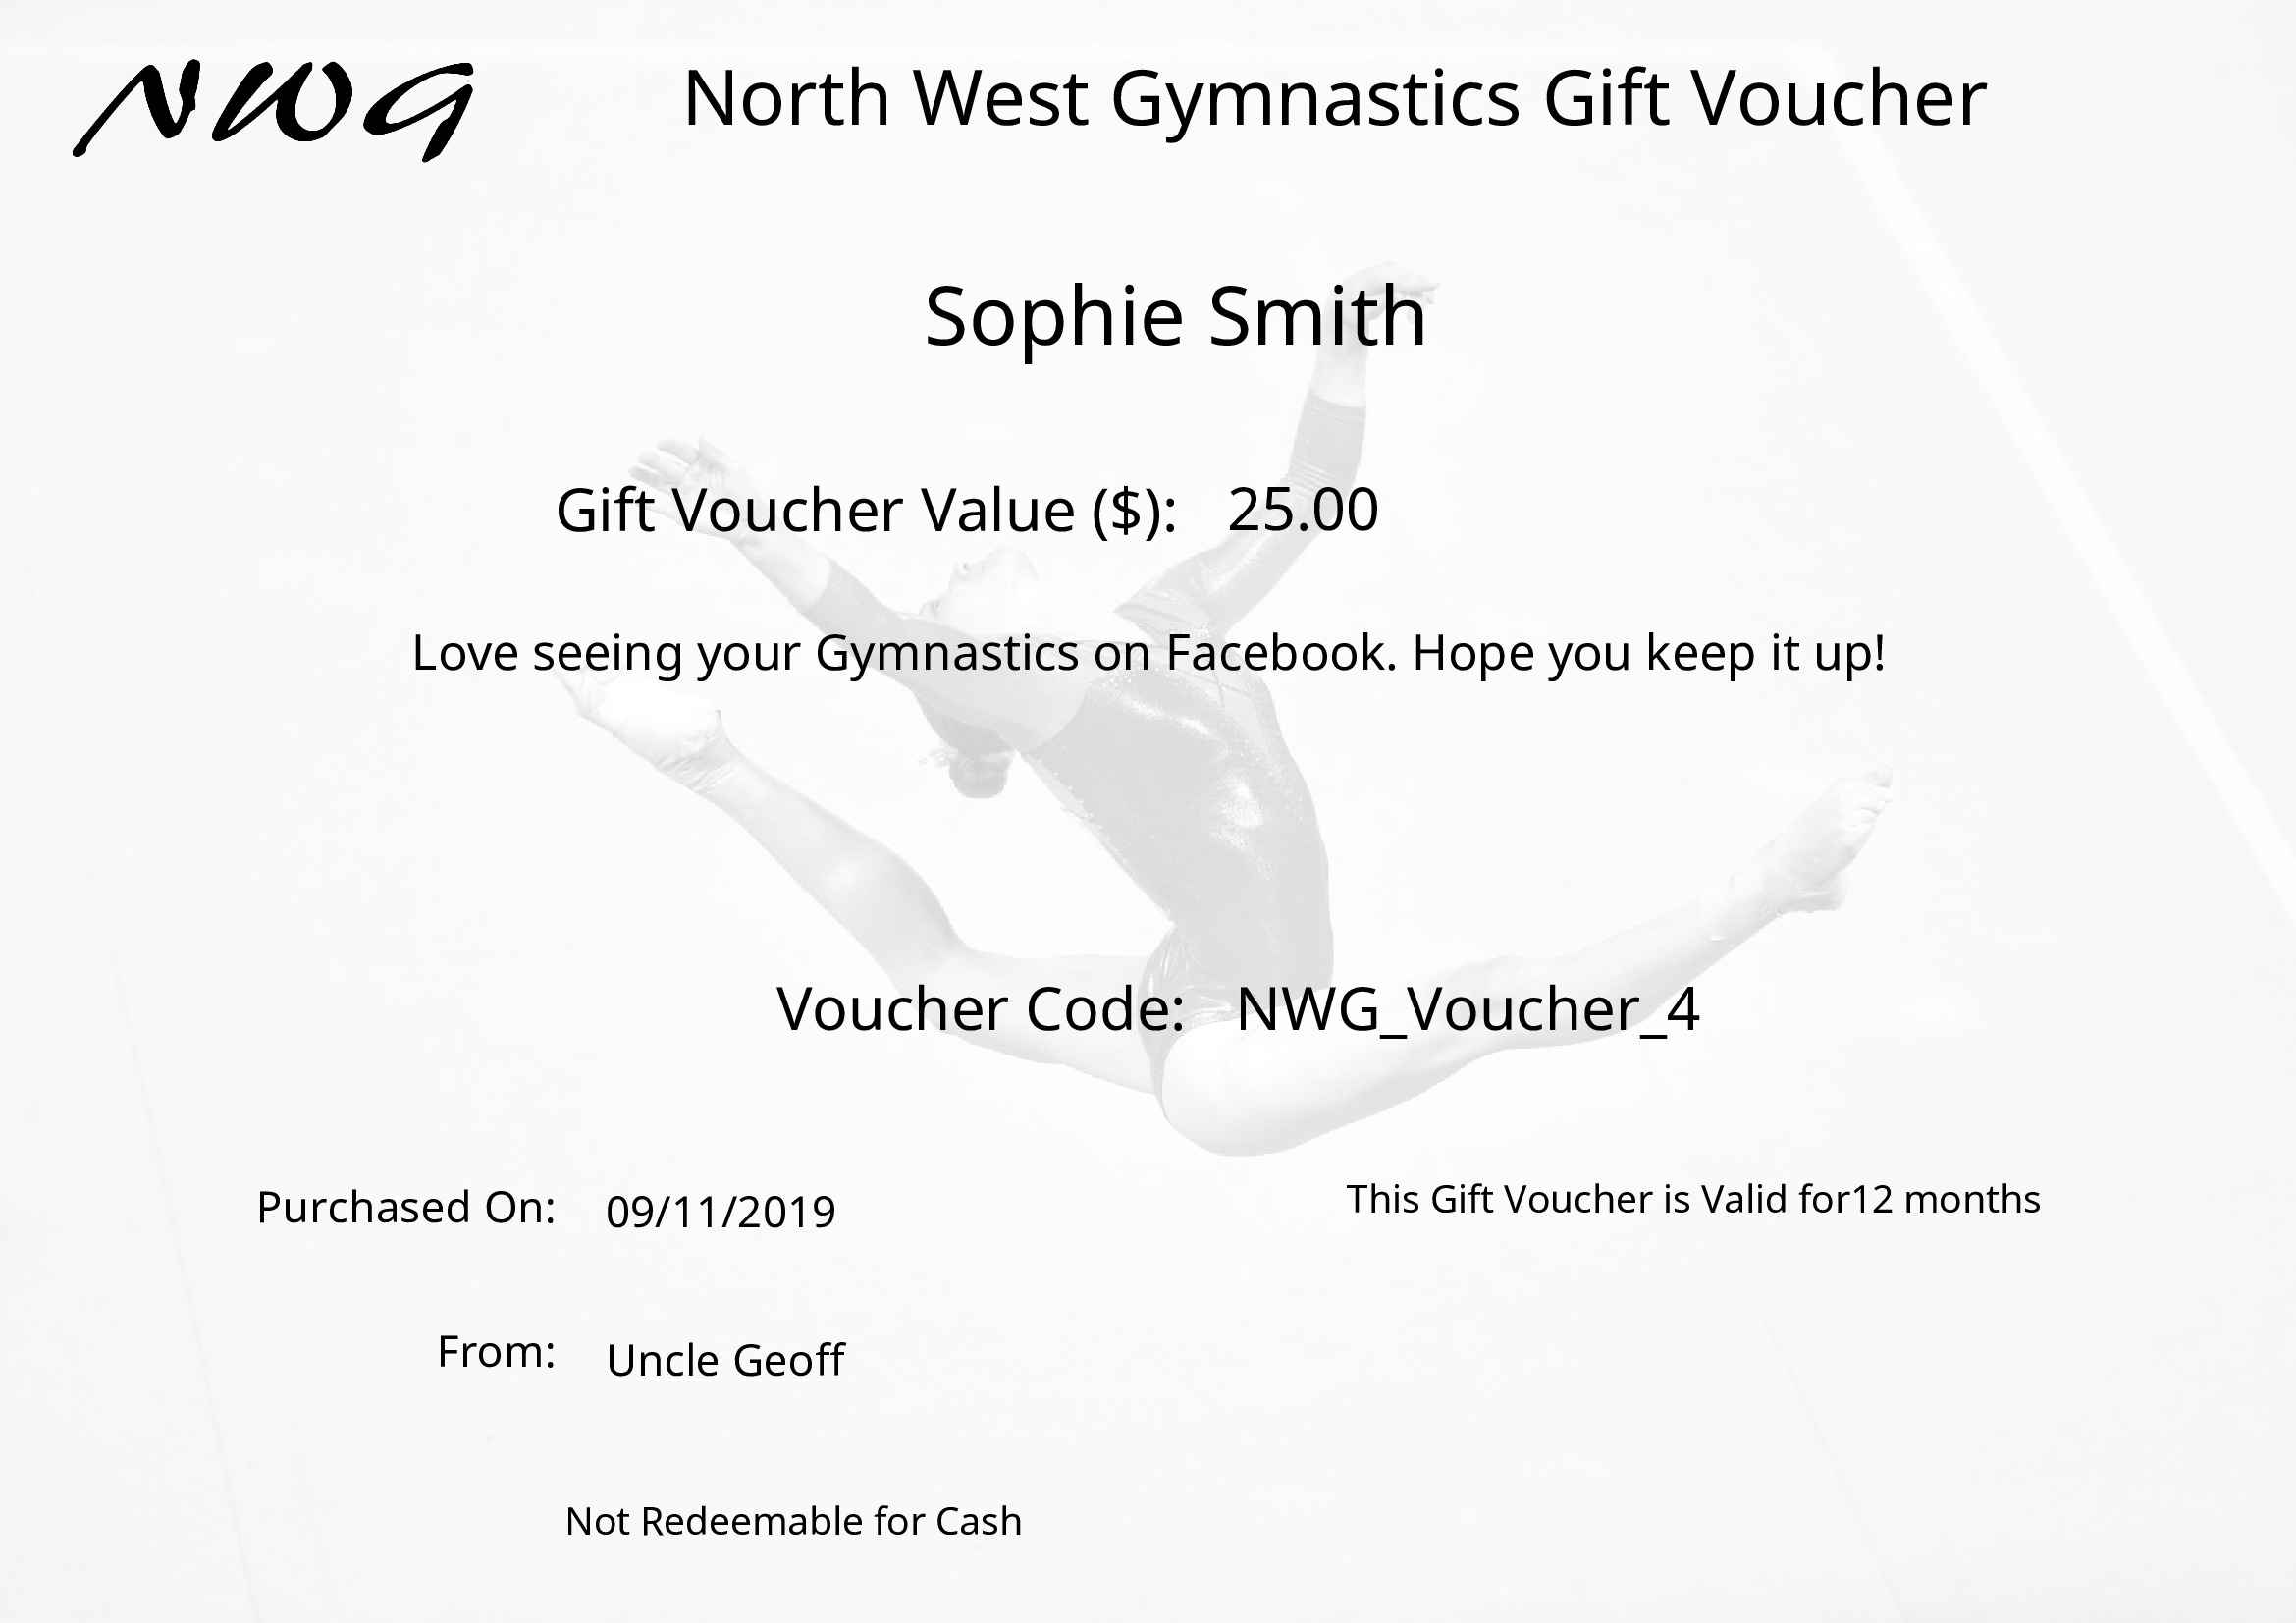 NWG Gift Voucher North West Gymnastics Mount Isa